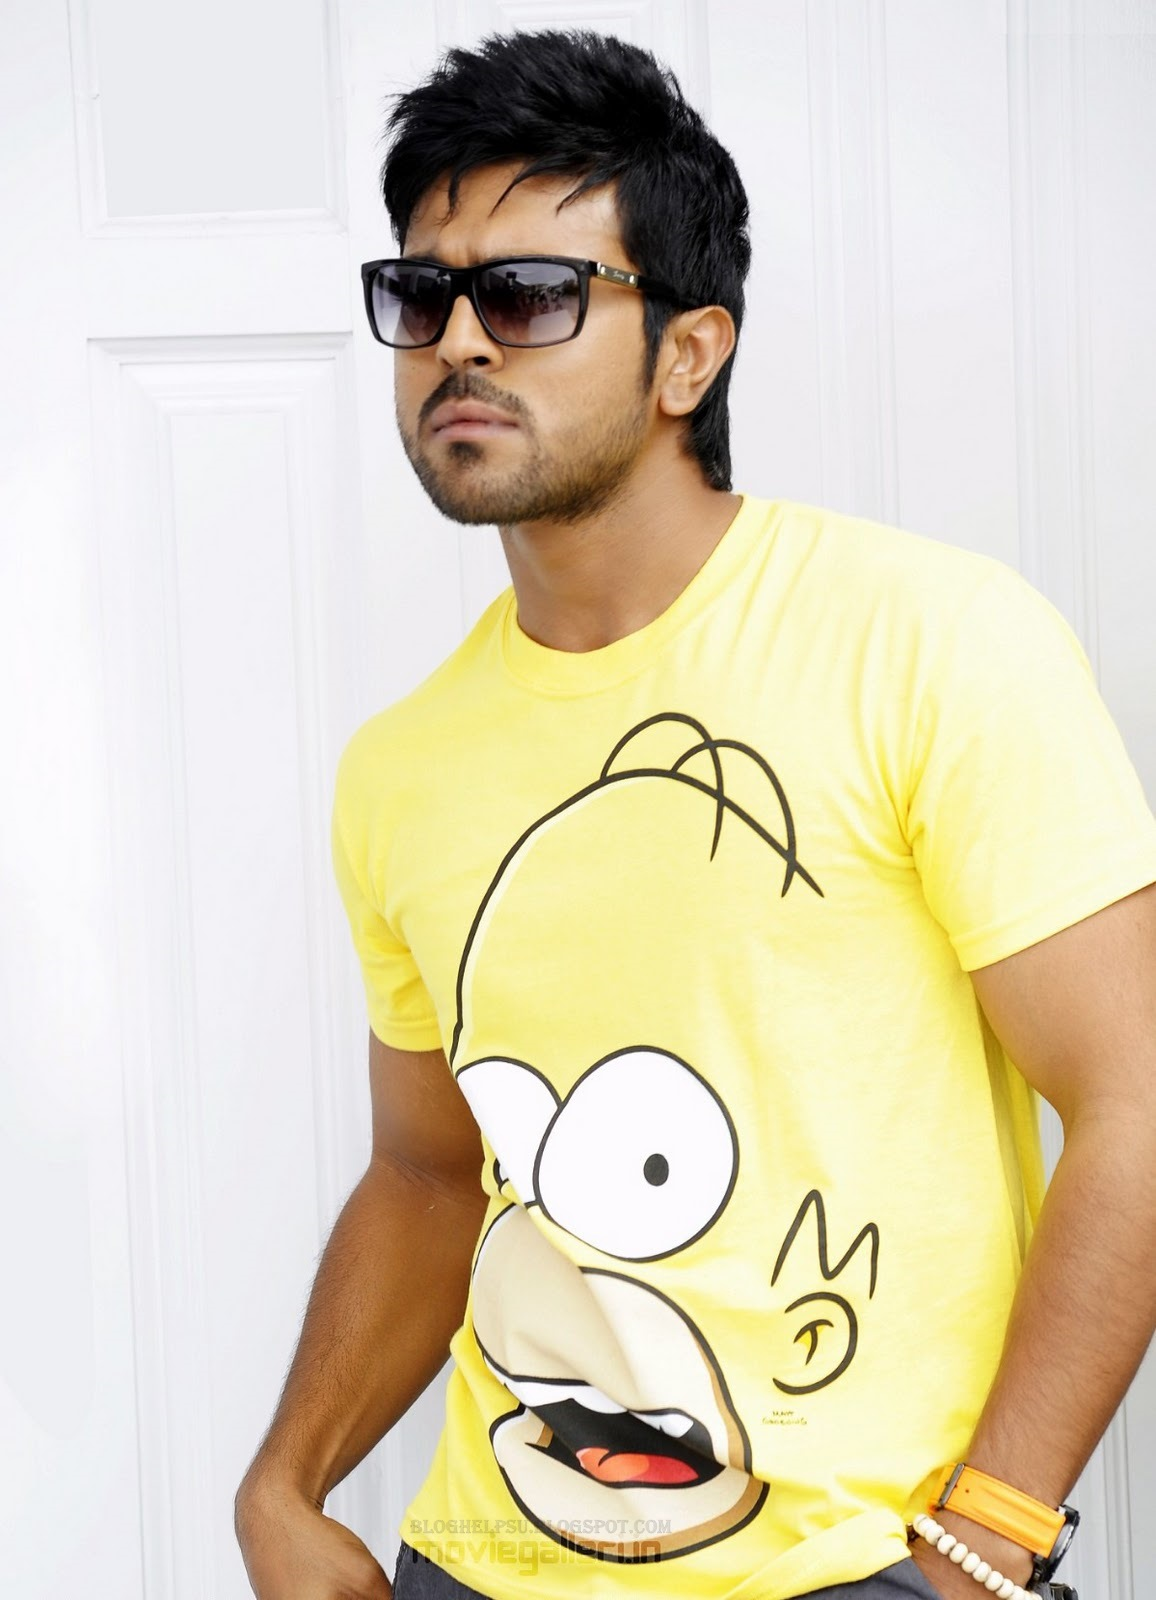 EntertaInmenT Ram Charan Teja Biography Ramcharan Teja